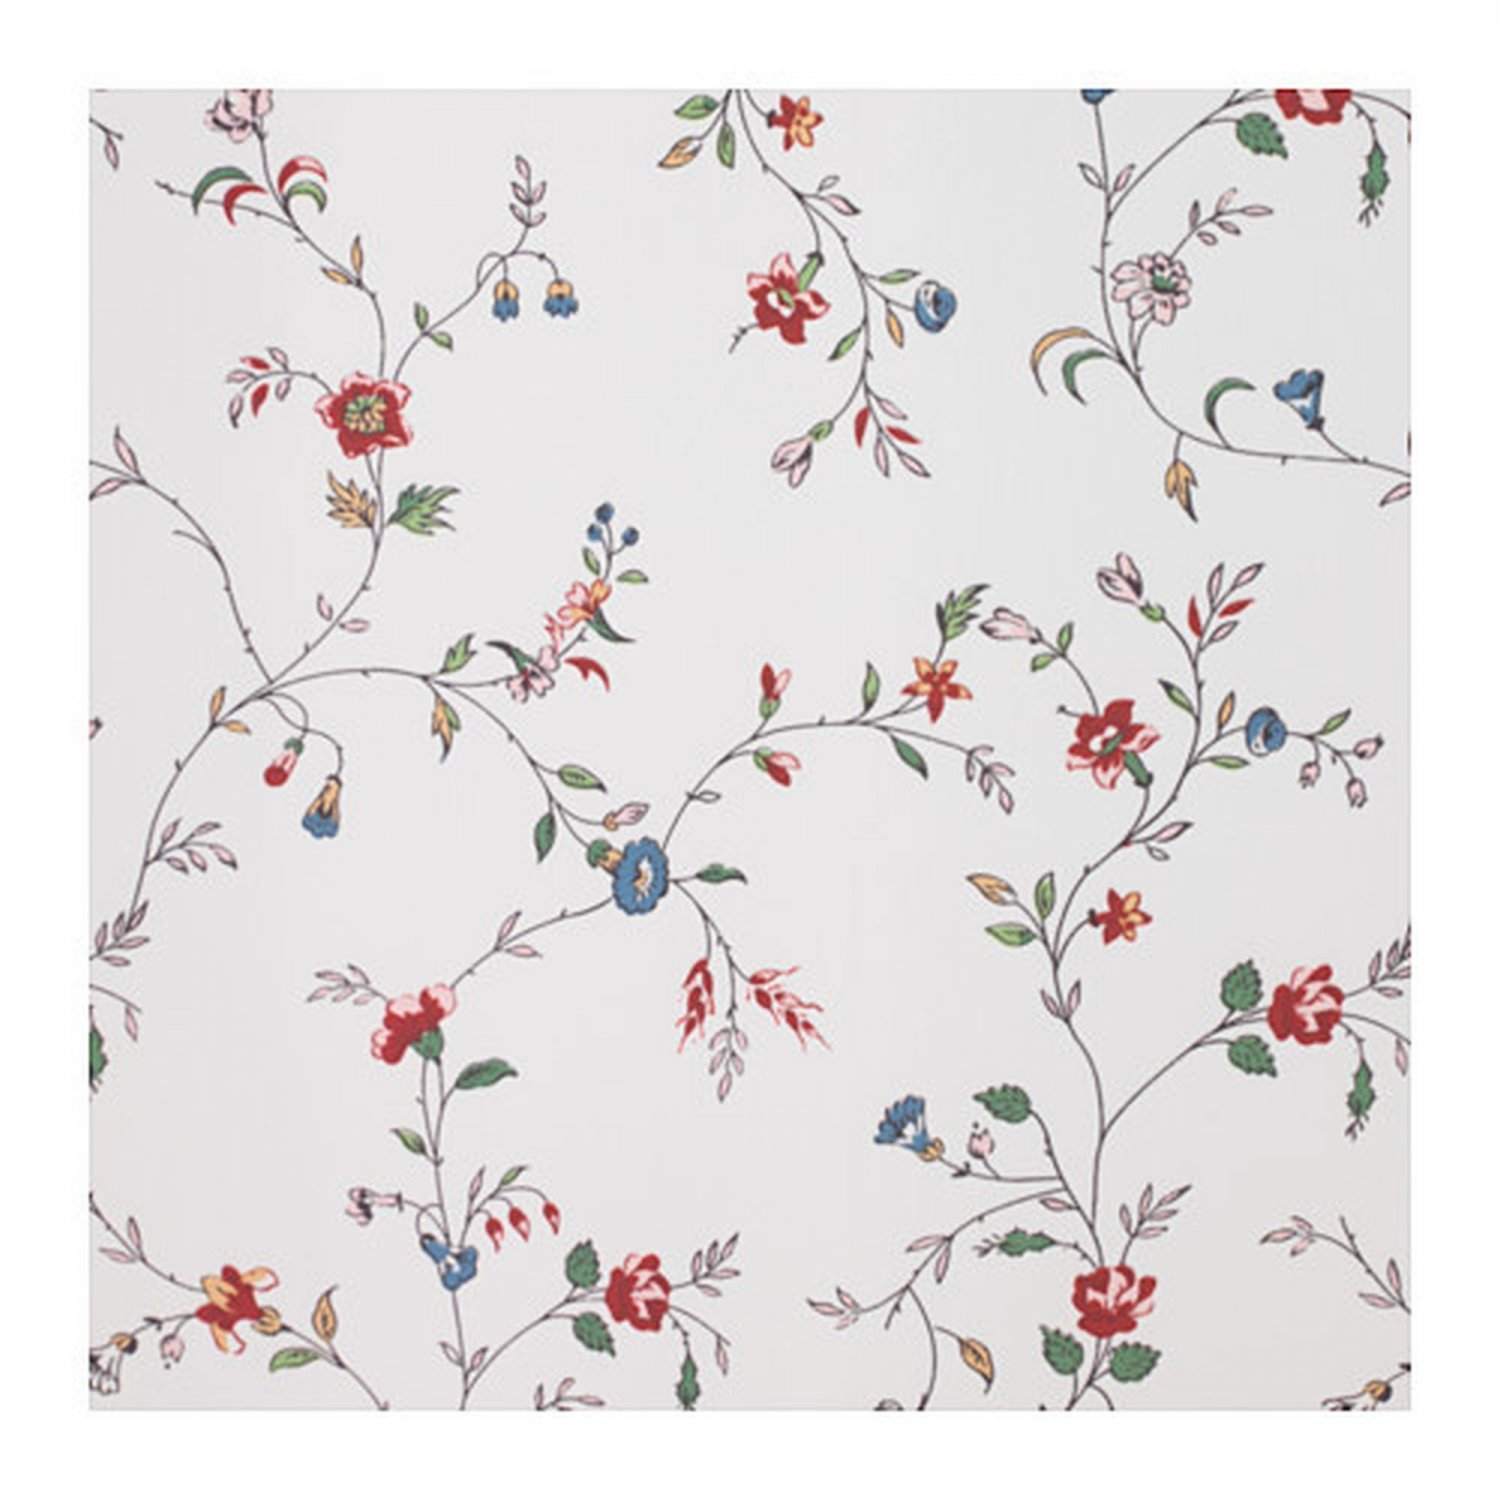 Ikea Trdaster Duvet Cover And Pillowcases Gray Ideas Para Jonill Sarung Quilt 150x200 Cm Ljusoga Fabric Shower Curtain Multicolor White Floral